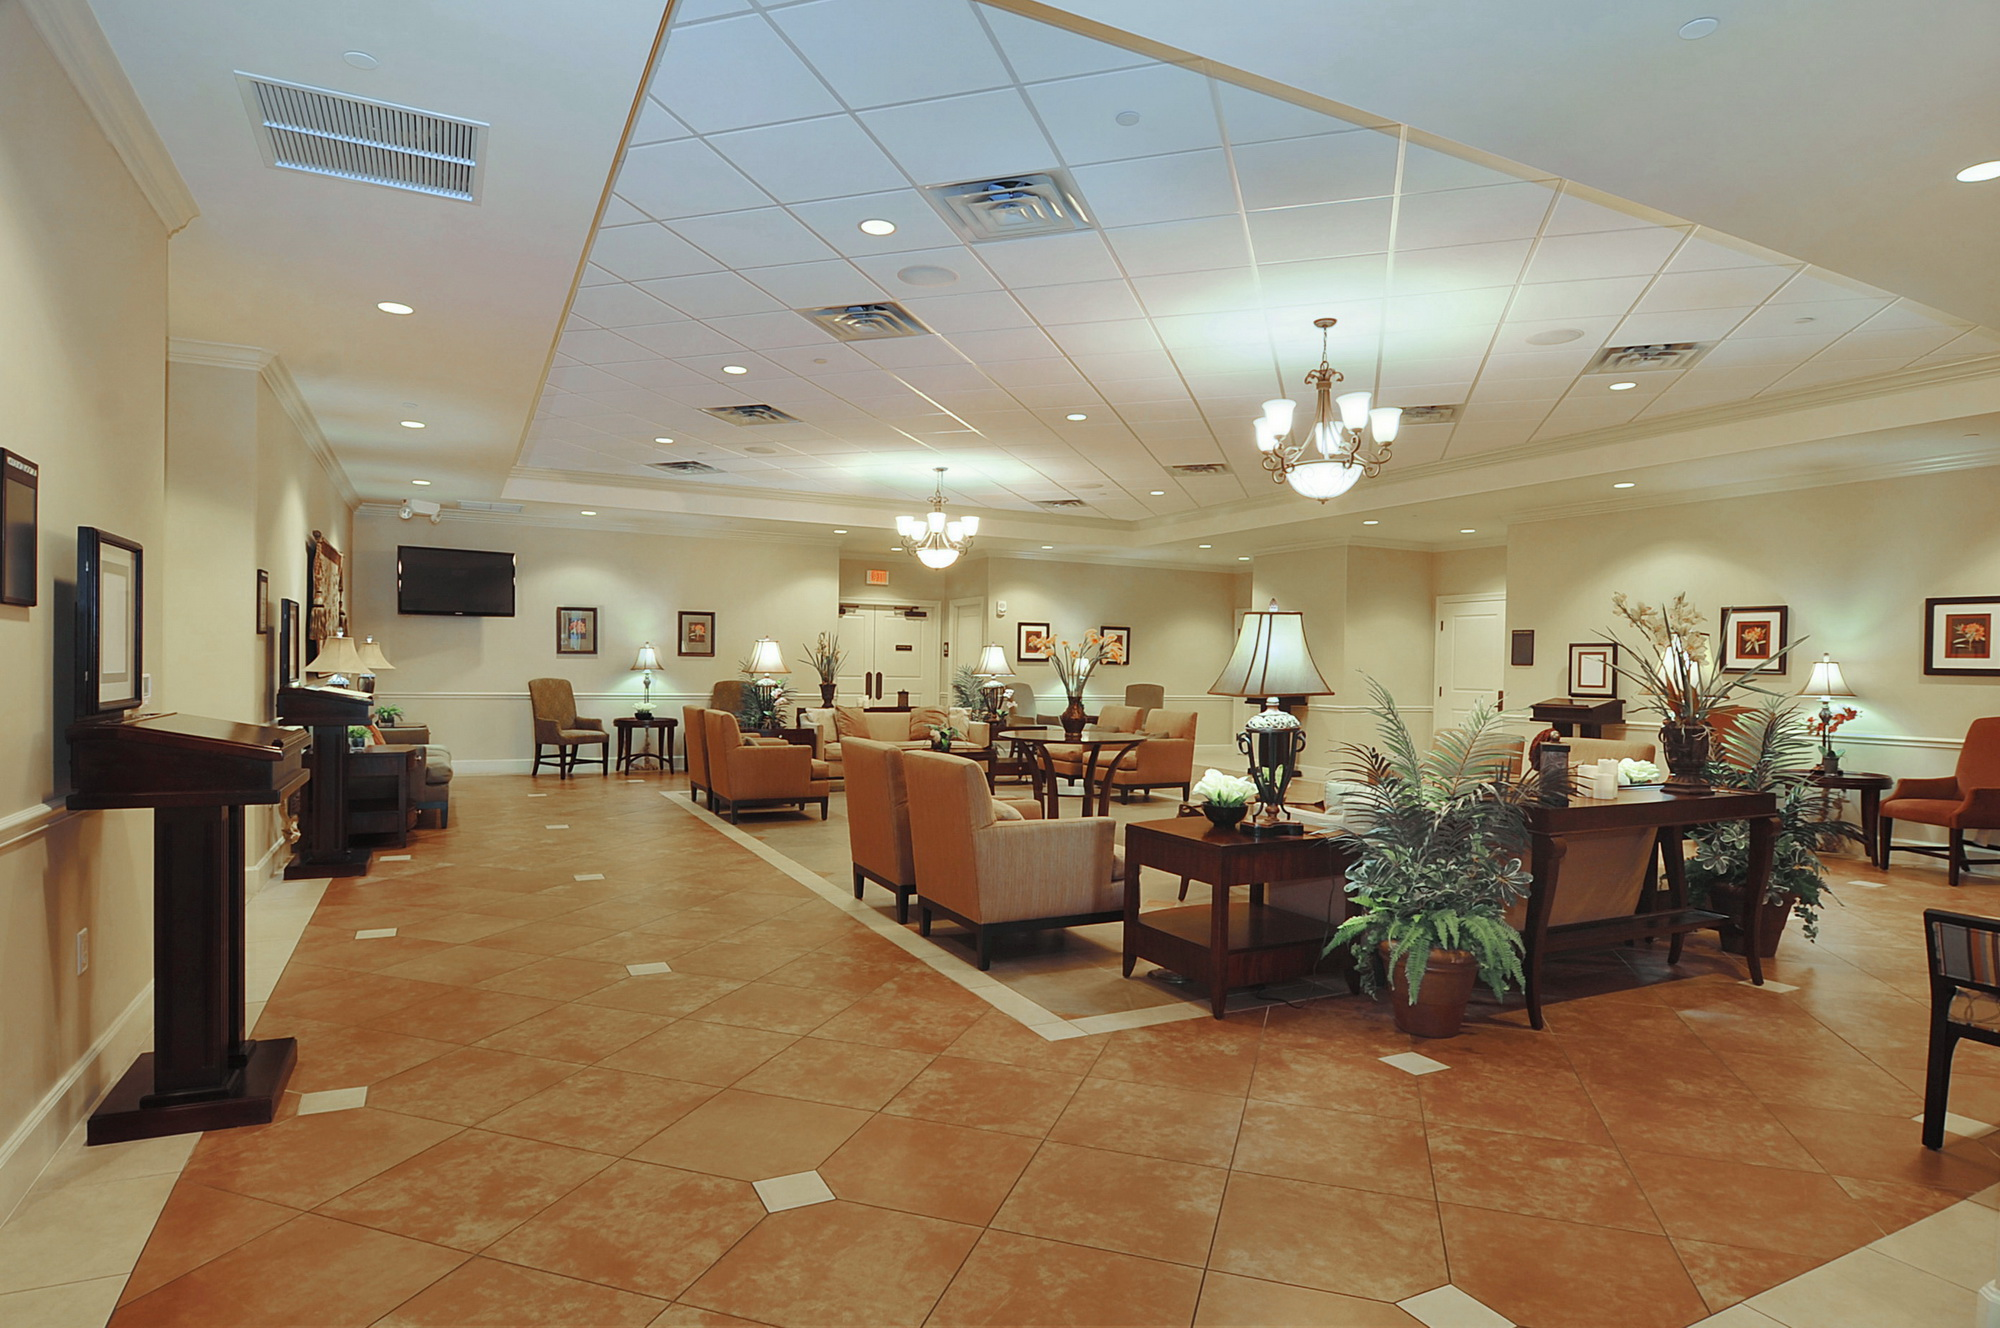 Caballero river woodlawn funeral home hialeah chapel Funeral home interior design